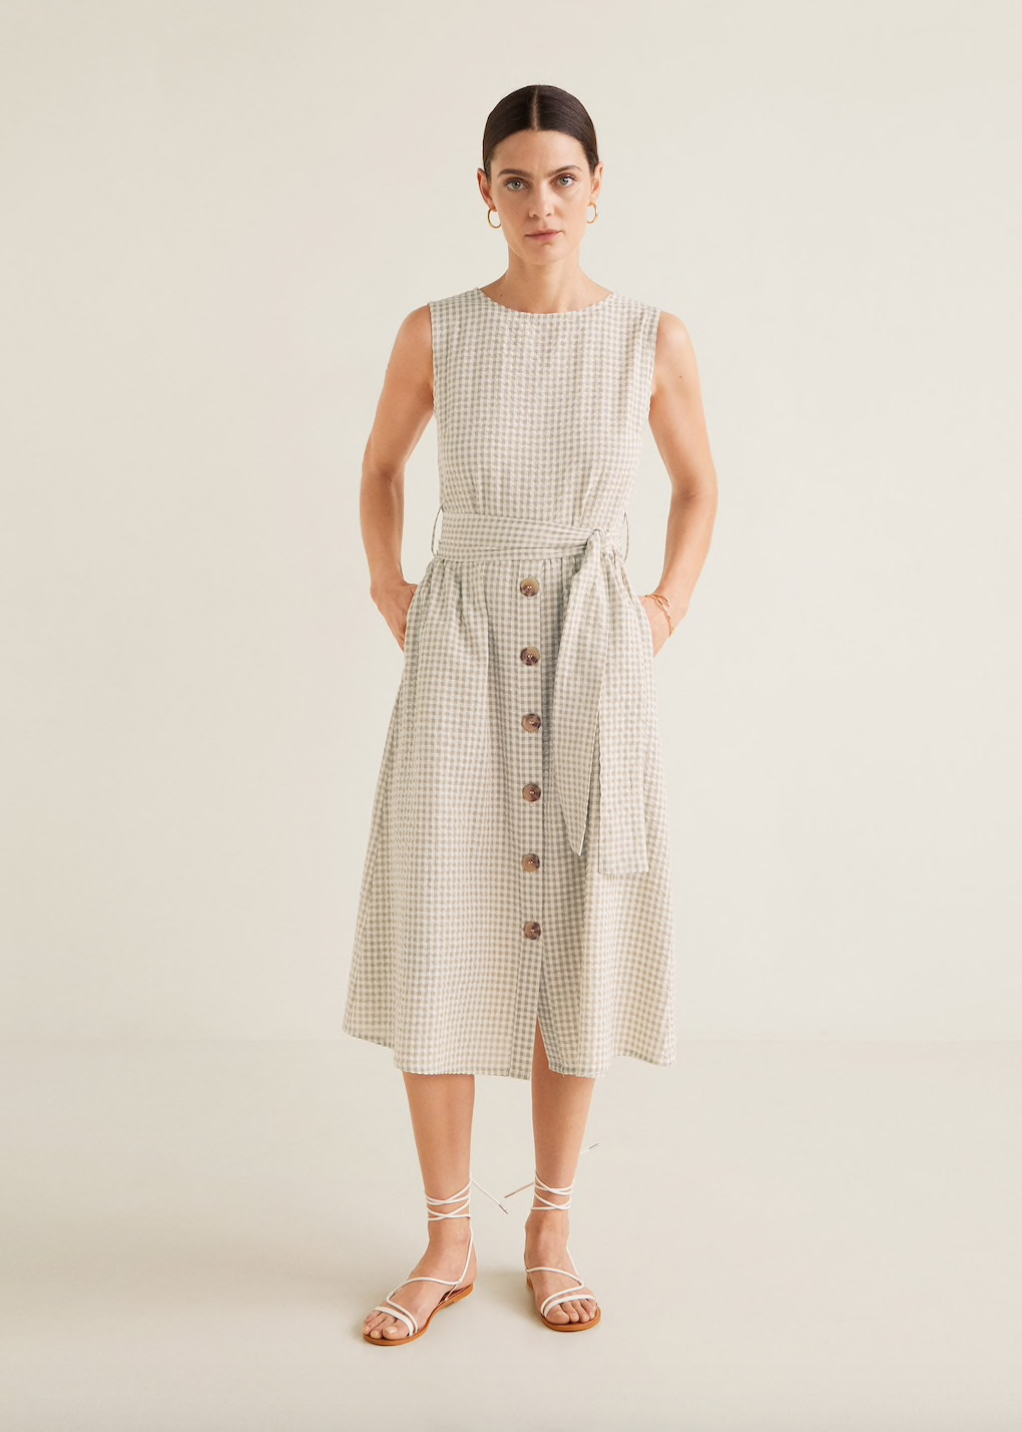 Mango Gingham Textured Dress | glitterinc.com | @glitterinc